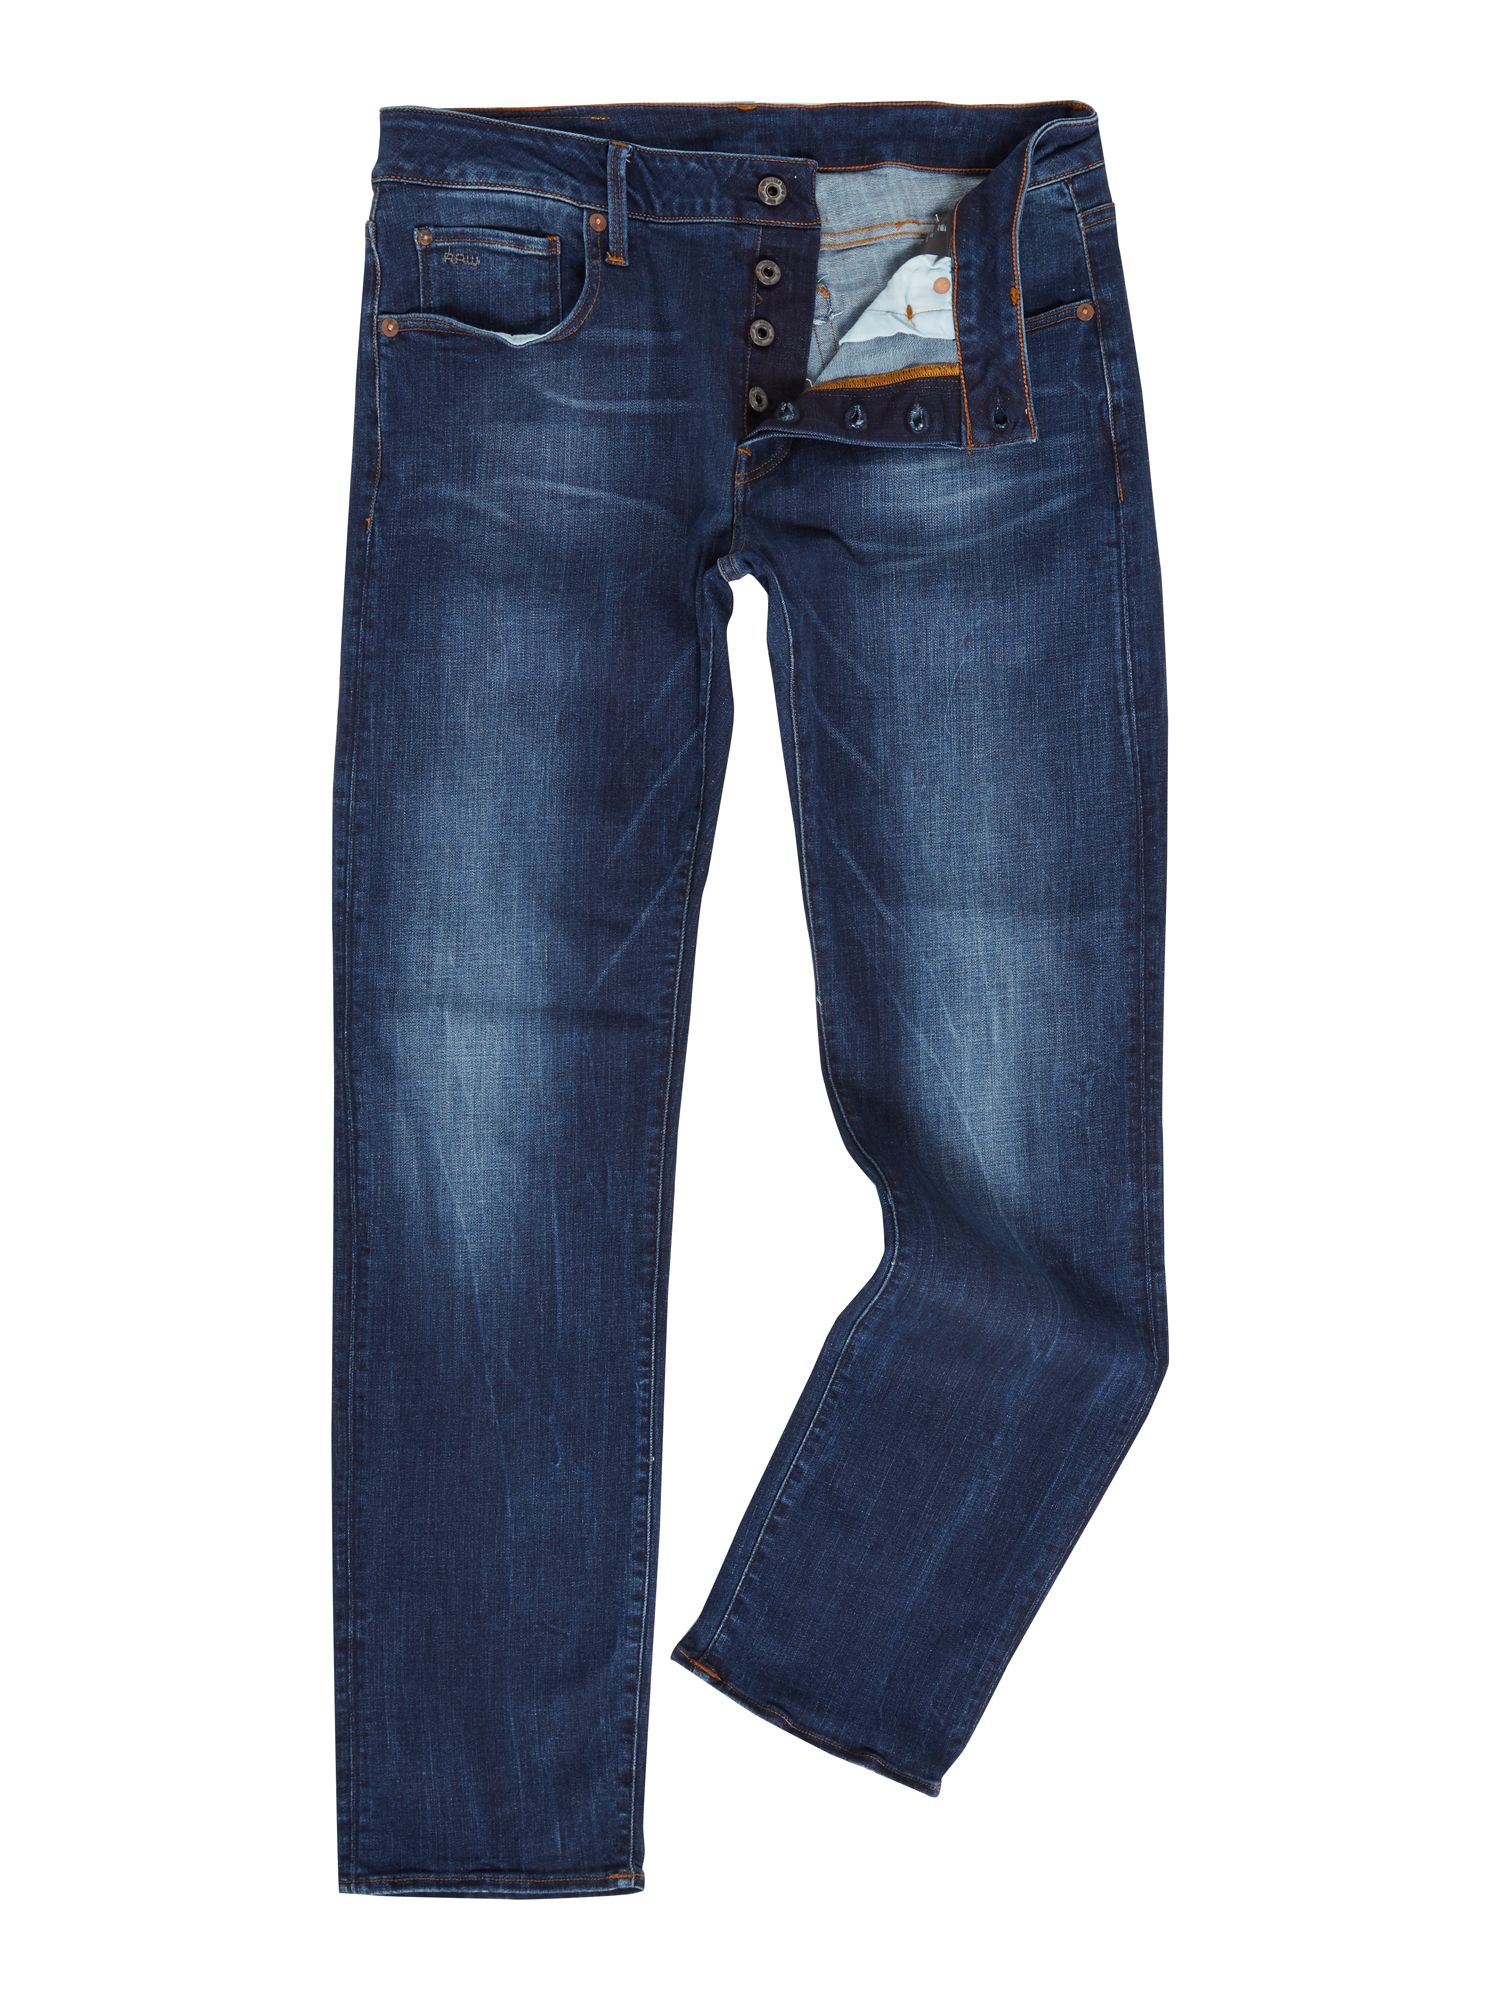 Mens G-star 3301 Straight Trender Ultimate Stretch Jeans, Denim Mid Wash